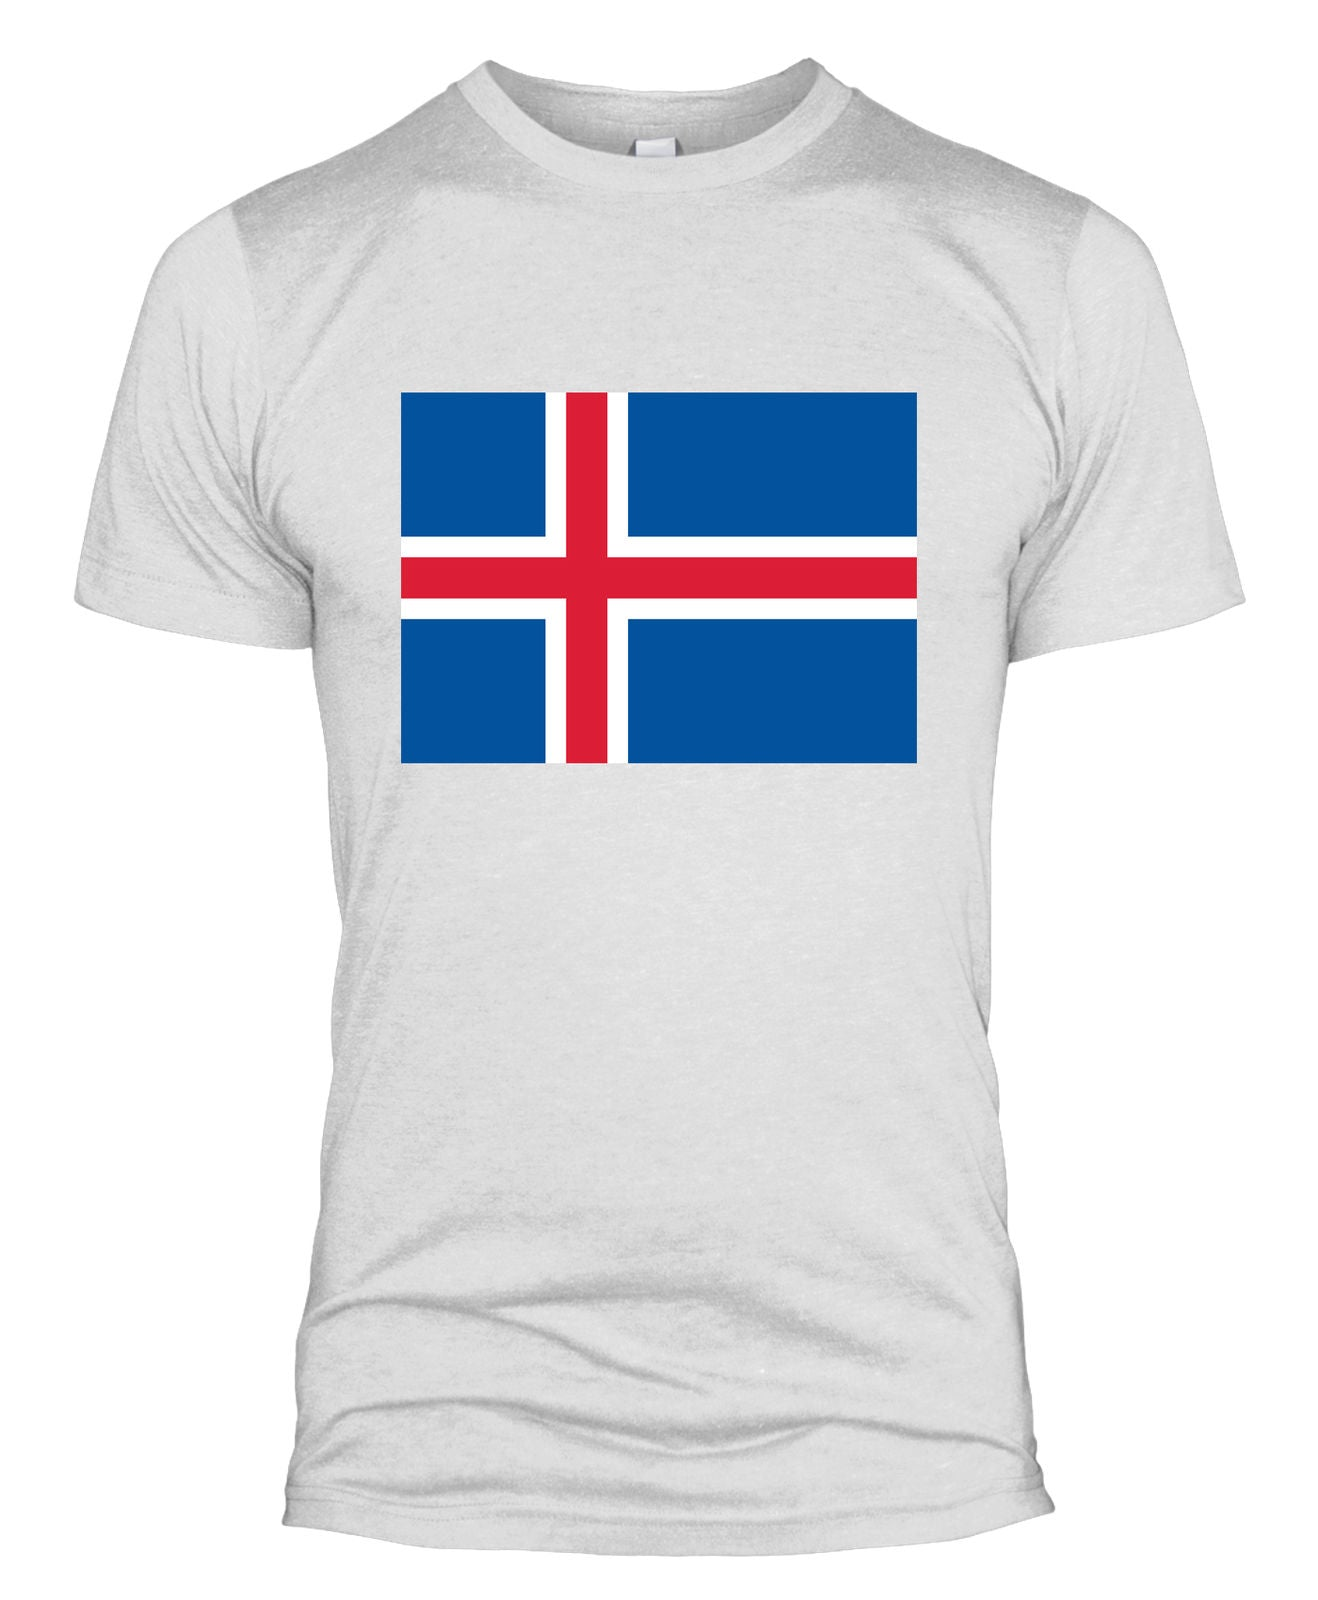 separation shoes b815d 116dc Iceland Flag T Shirt Football Support World Cup Icelandic Top Kit Men Women  L254 - The Clothing Shed